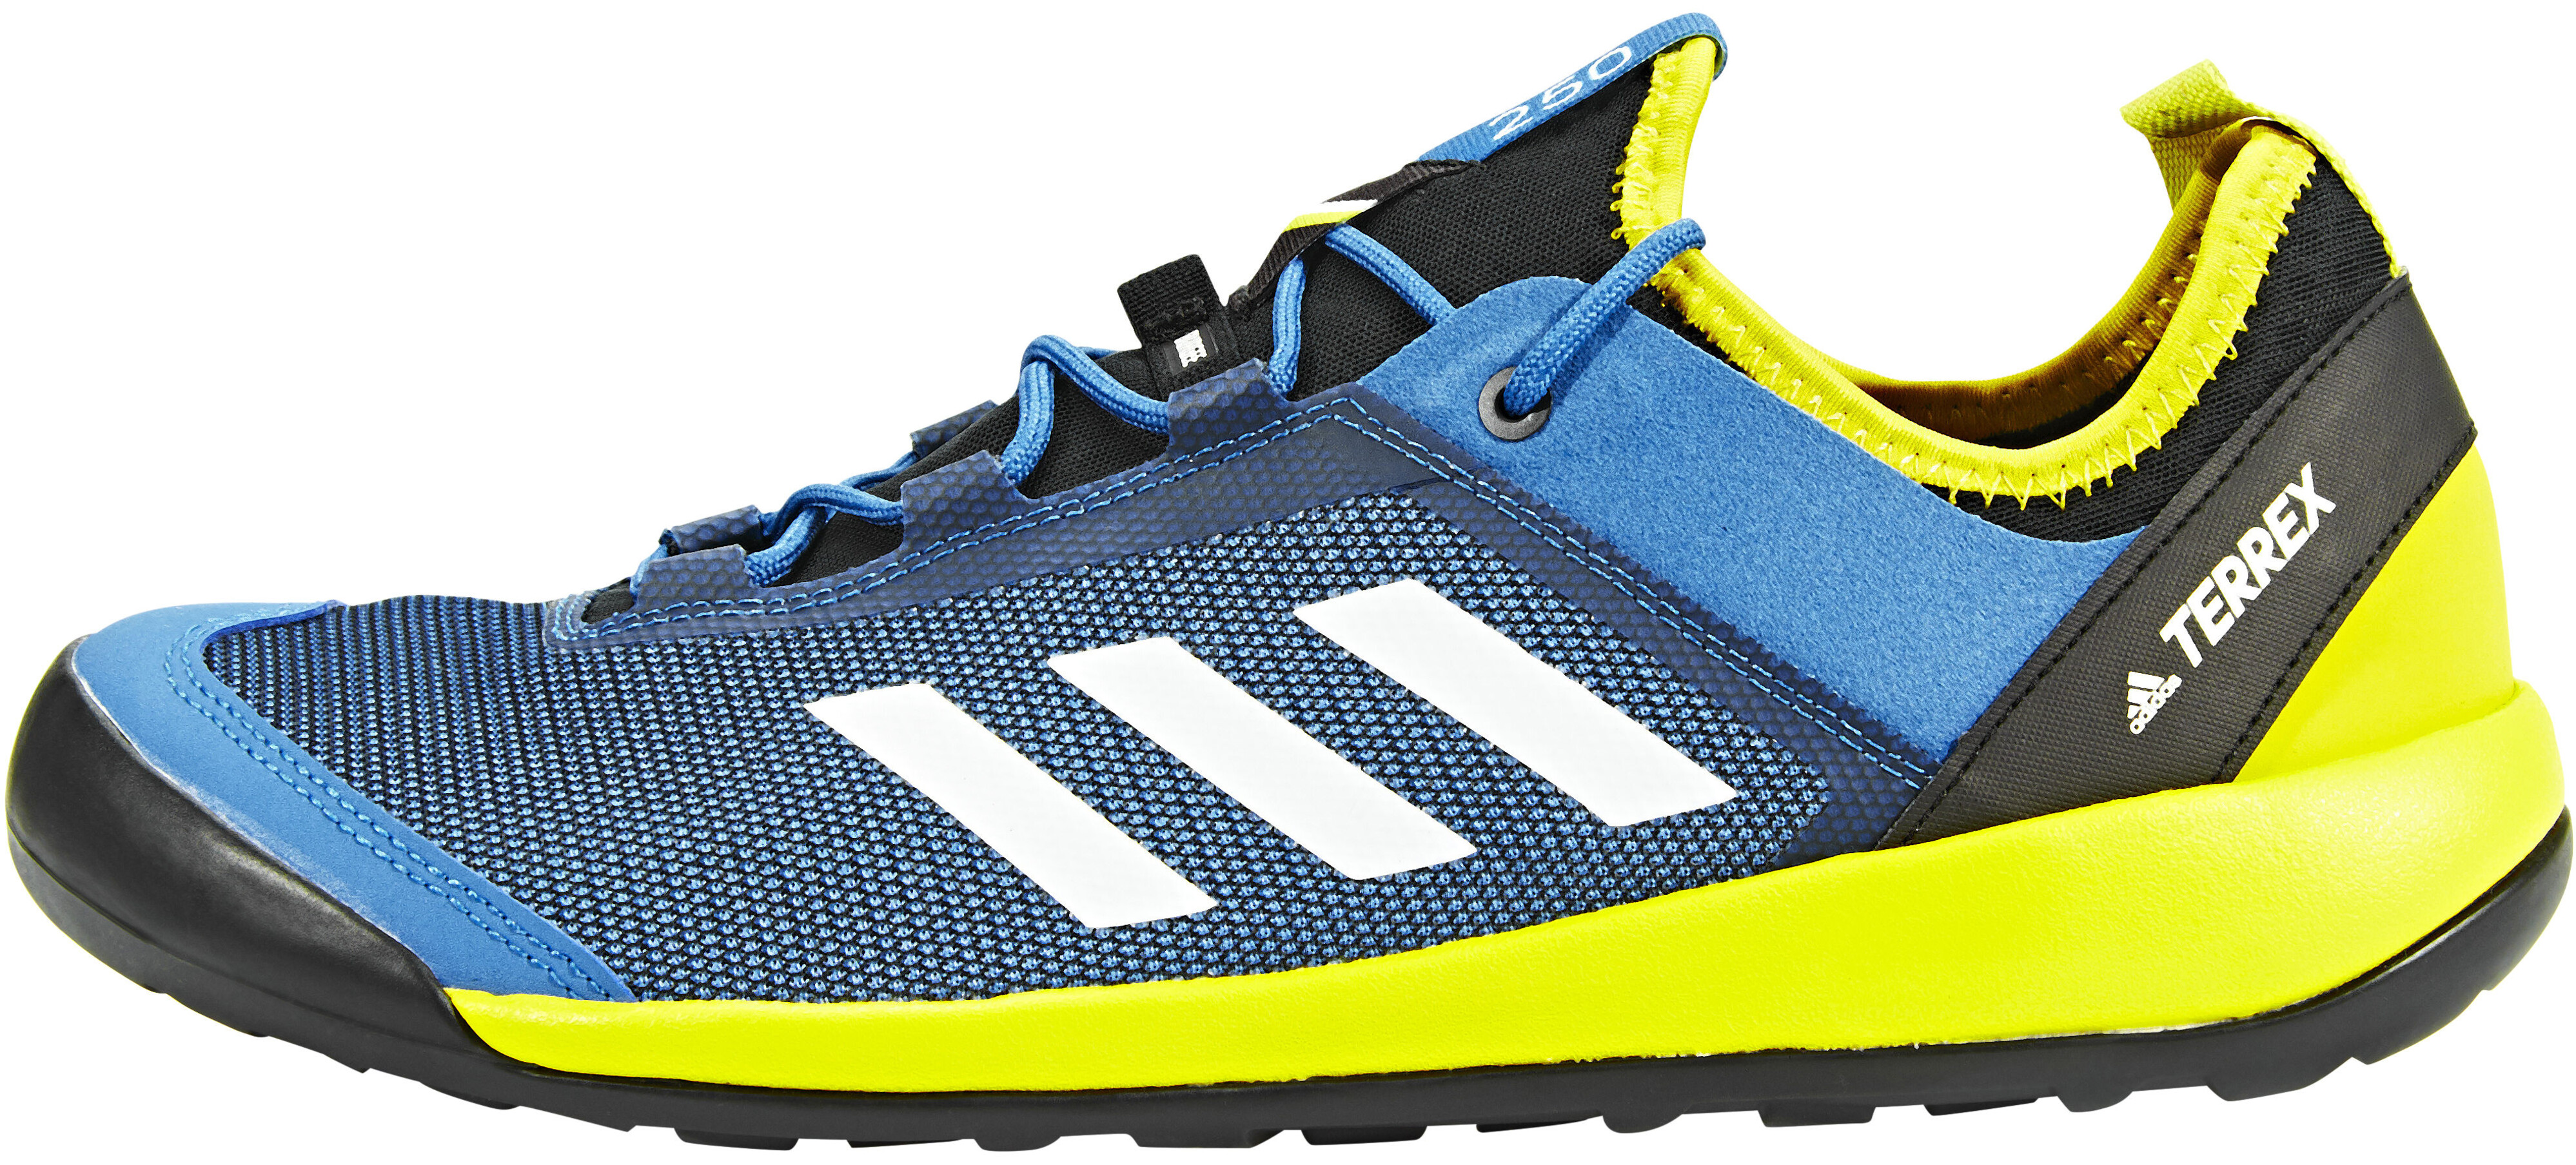 best sneakers c4e89 e4845 adidas TERREX Swift Solo Shoes Men yellowblue